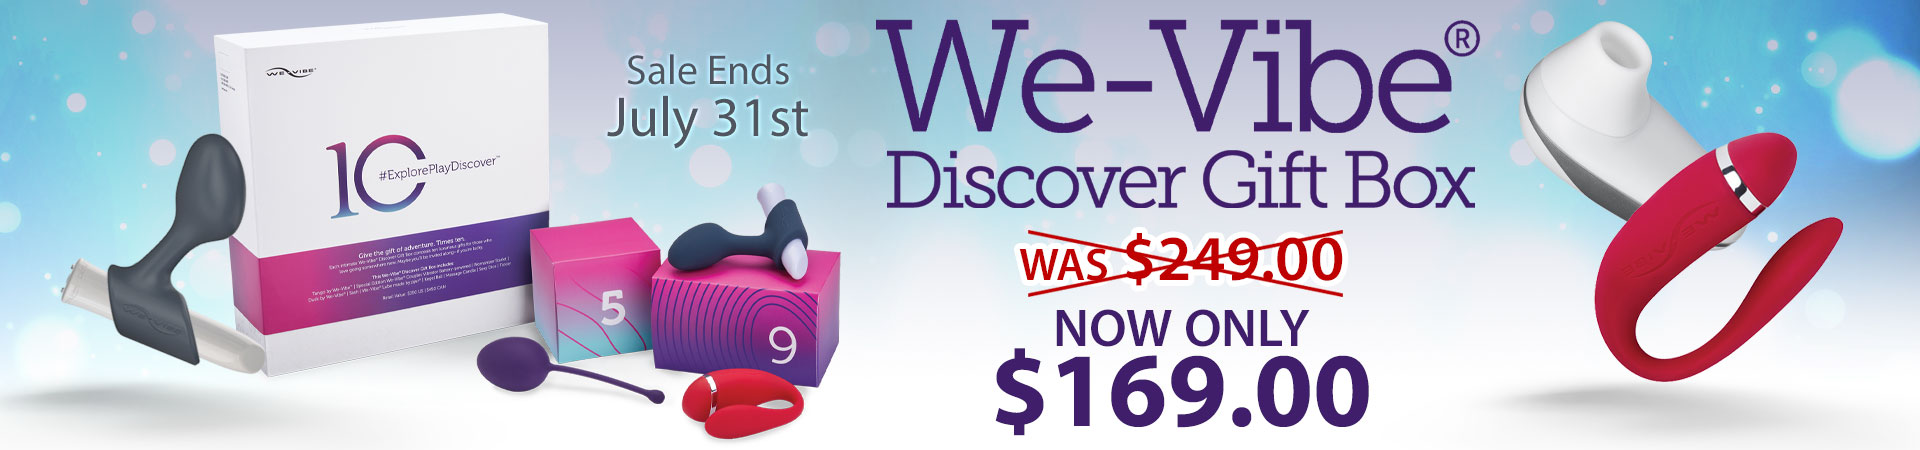 SheVibe Presents One Helluva Deal! The We-Vibe Discover 10 Piece Gift Box Is Now Only $169! Sale Ends July 31st - While Supplies